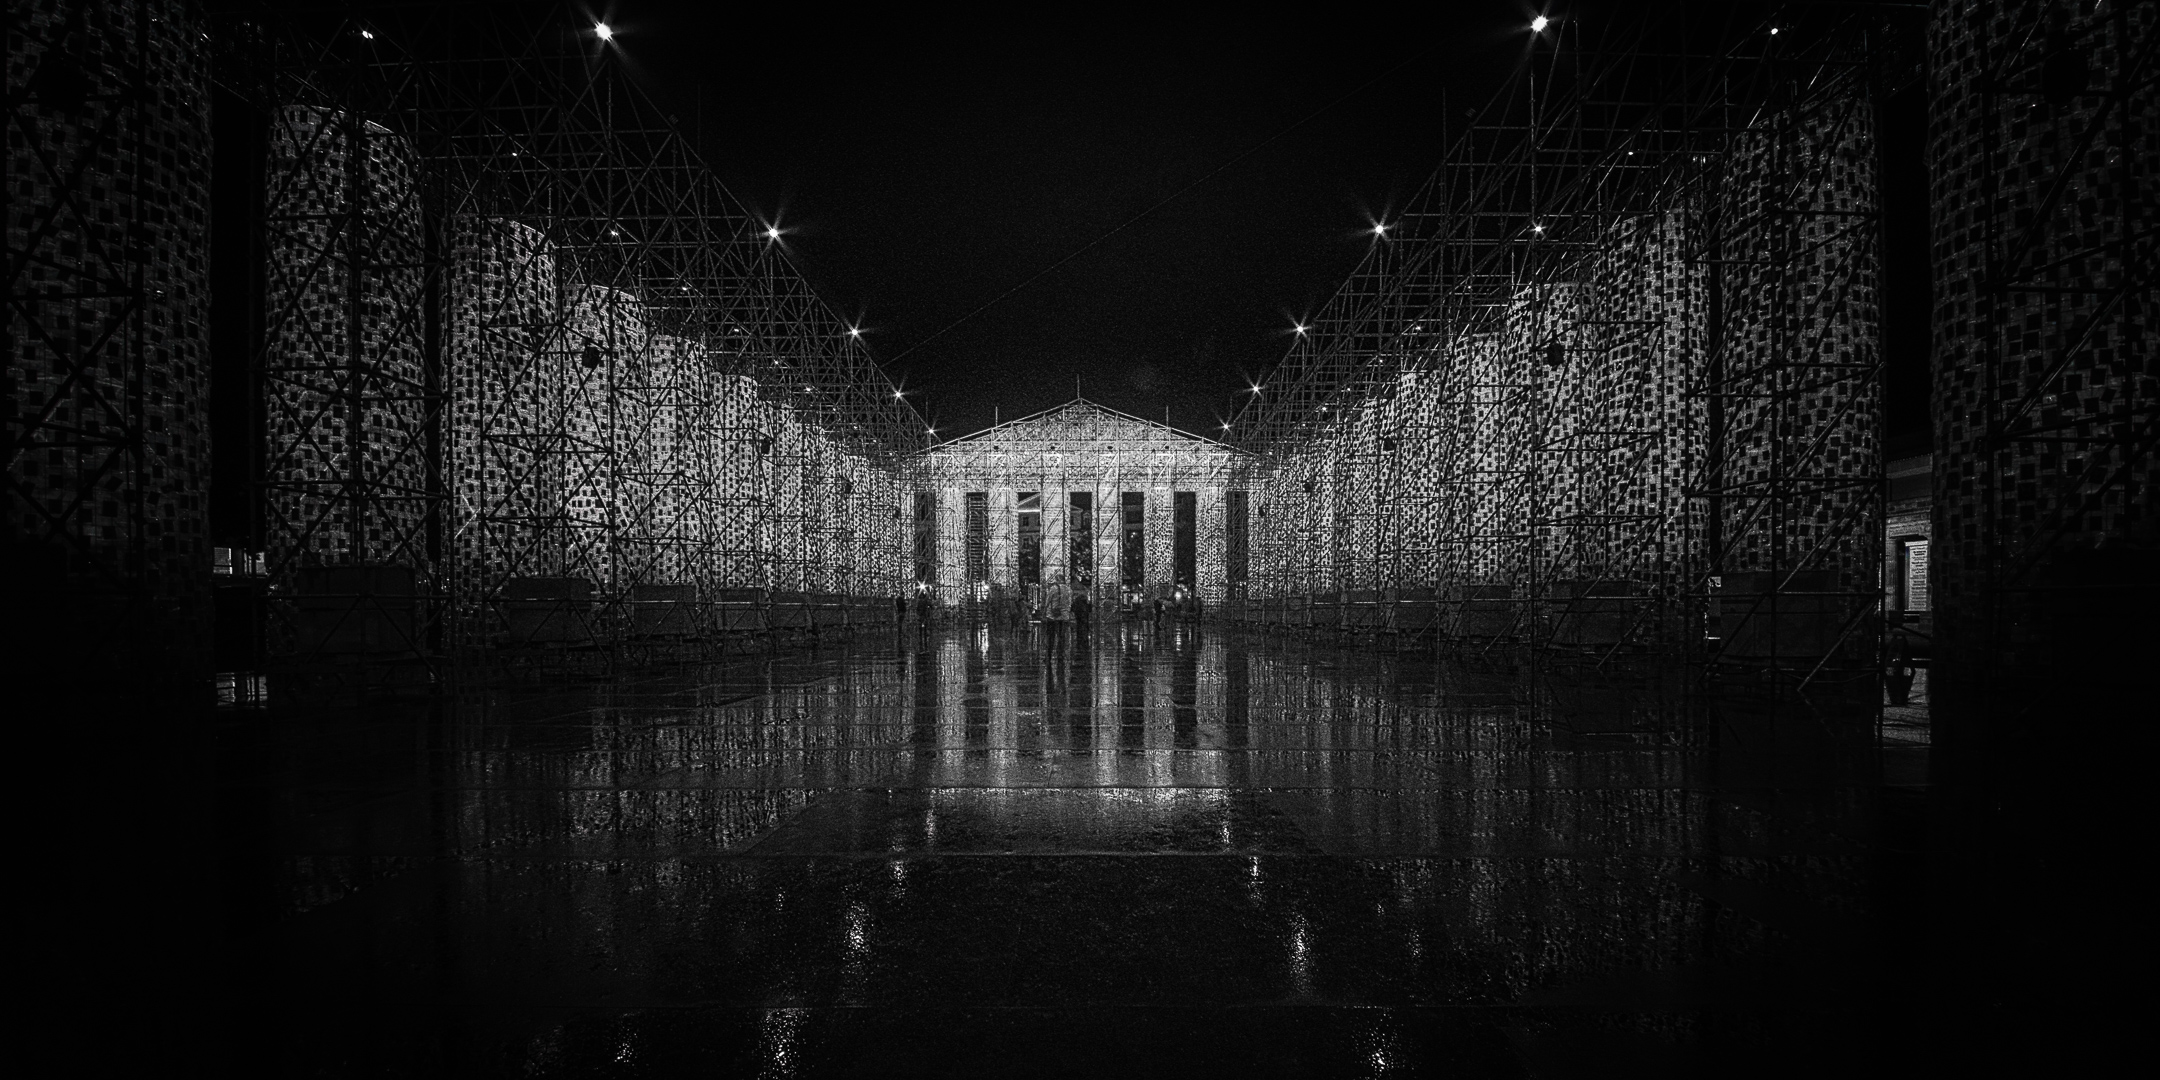 2017-8394 The Parthenon of Books - documenta 14